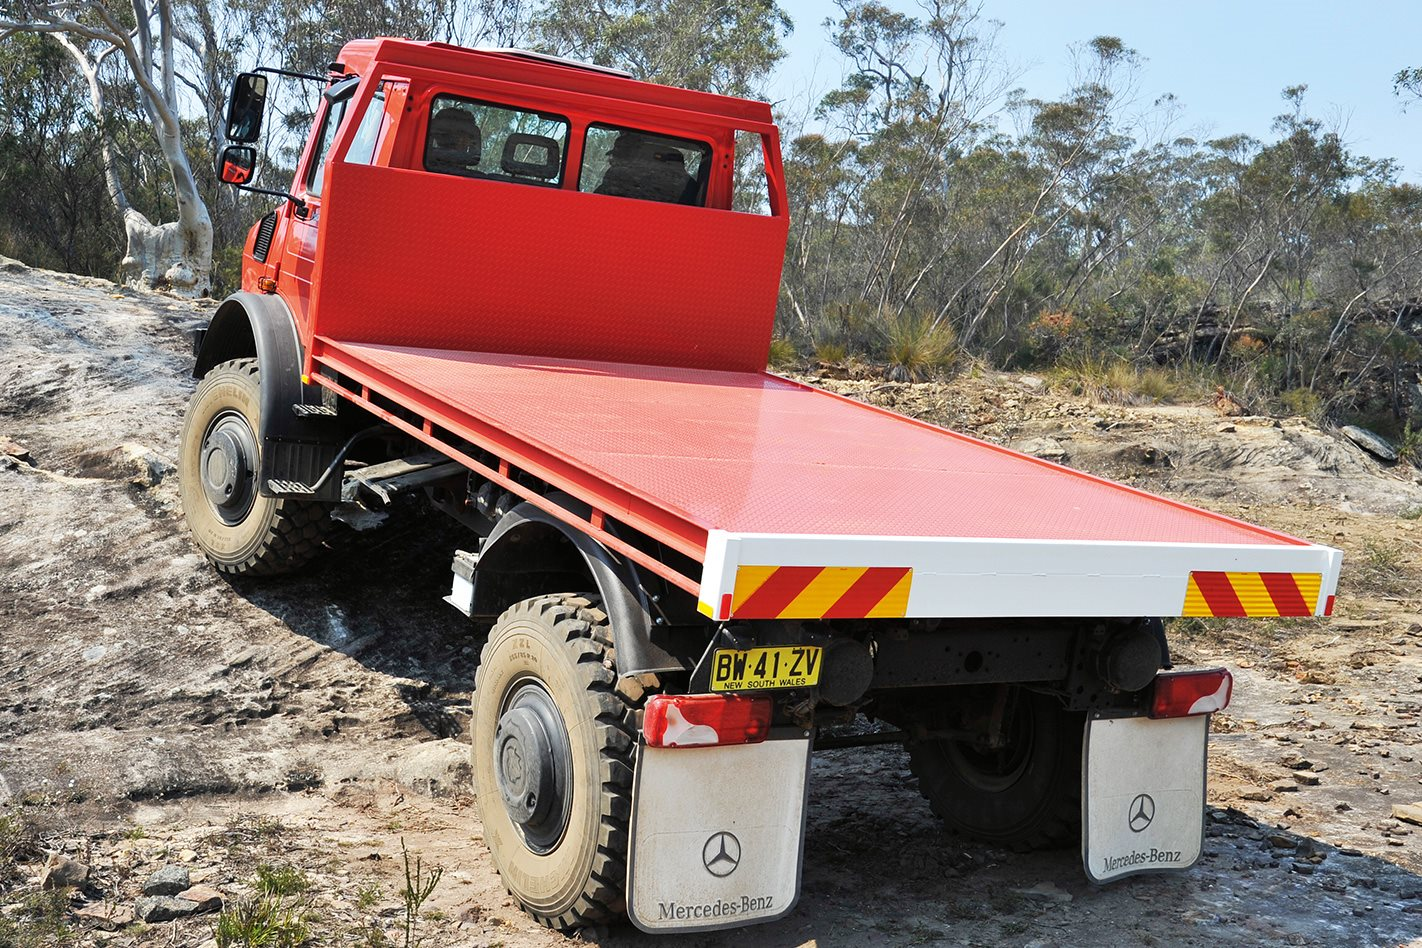 Mercedes Benz Unimog U5000 rear